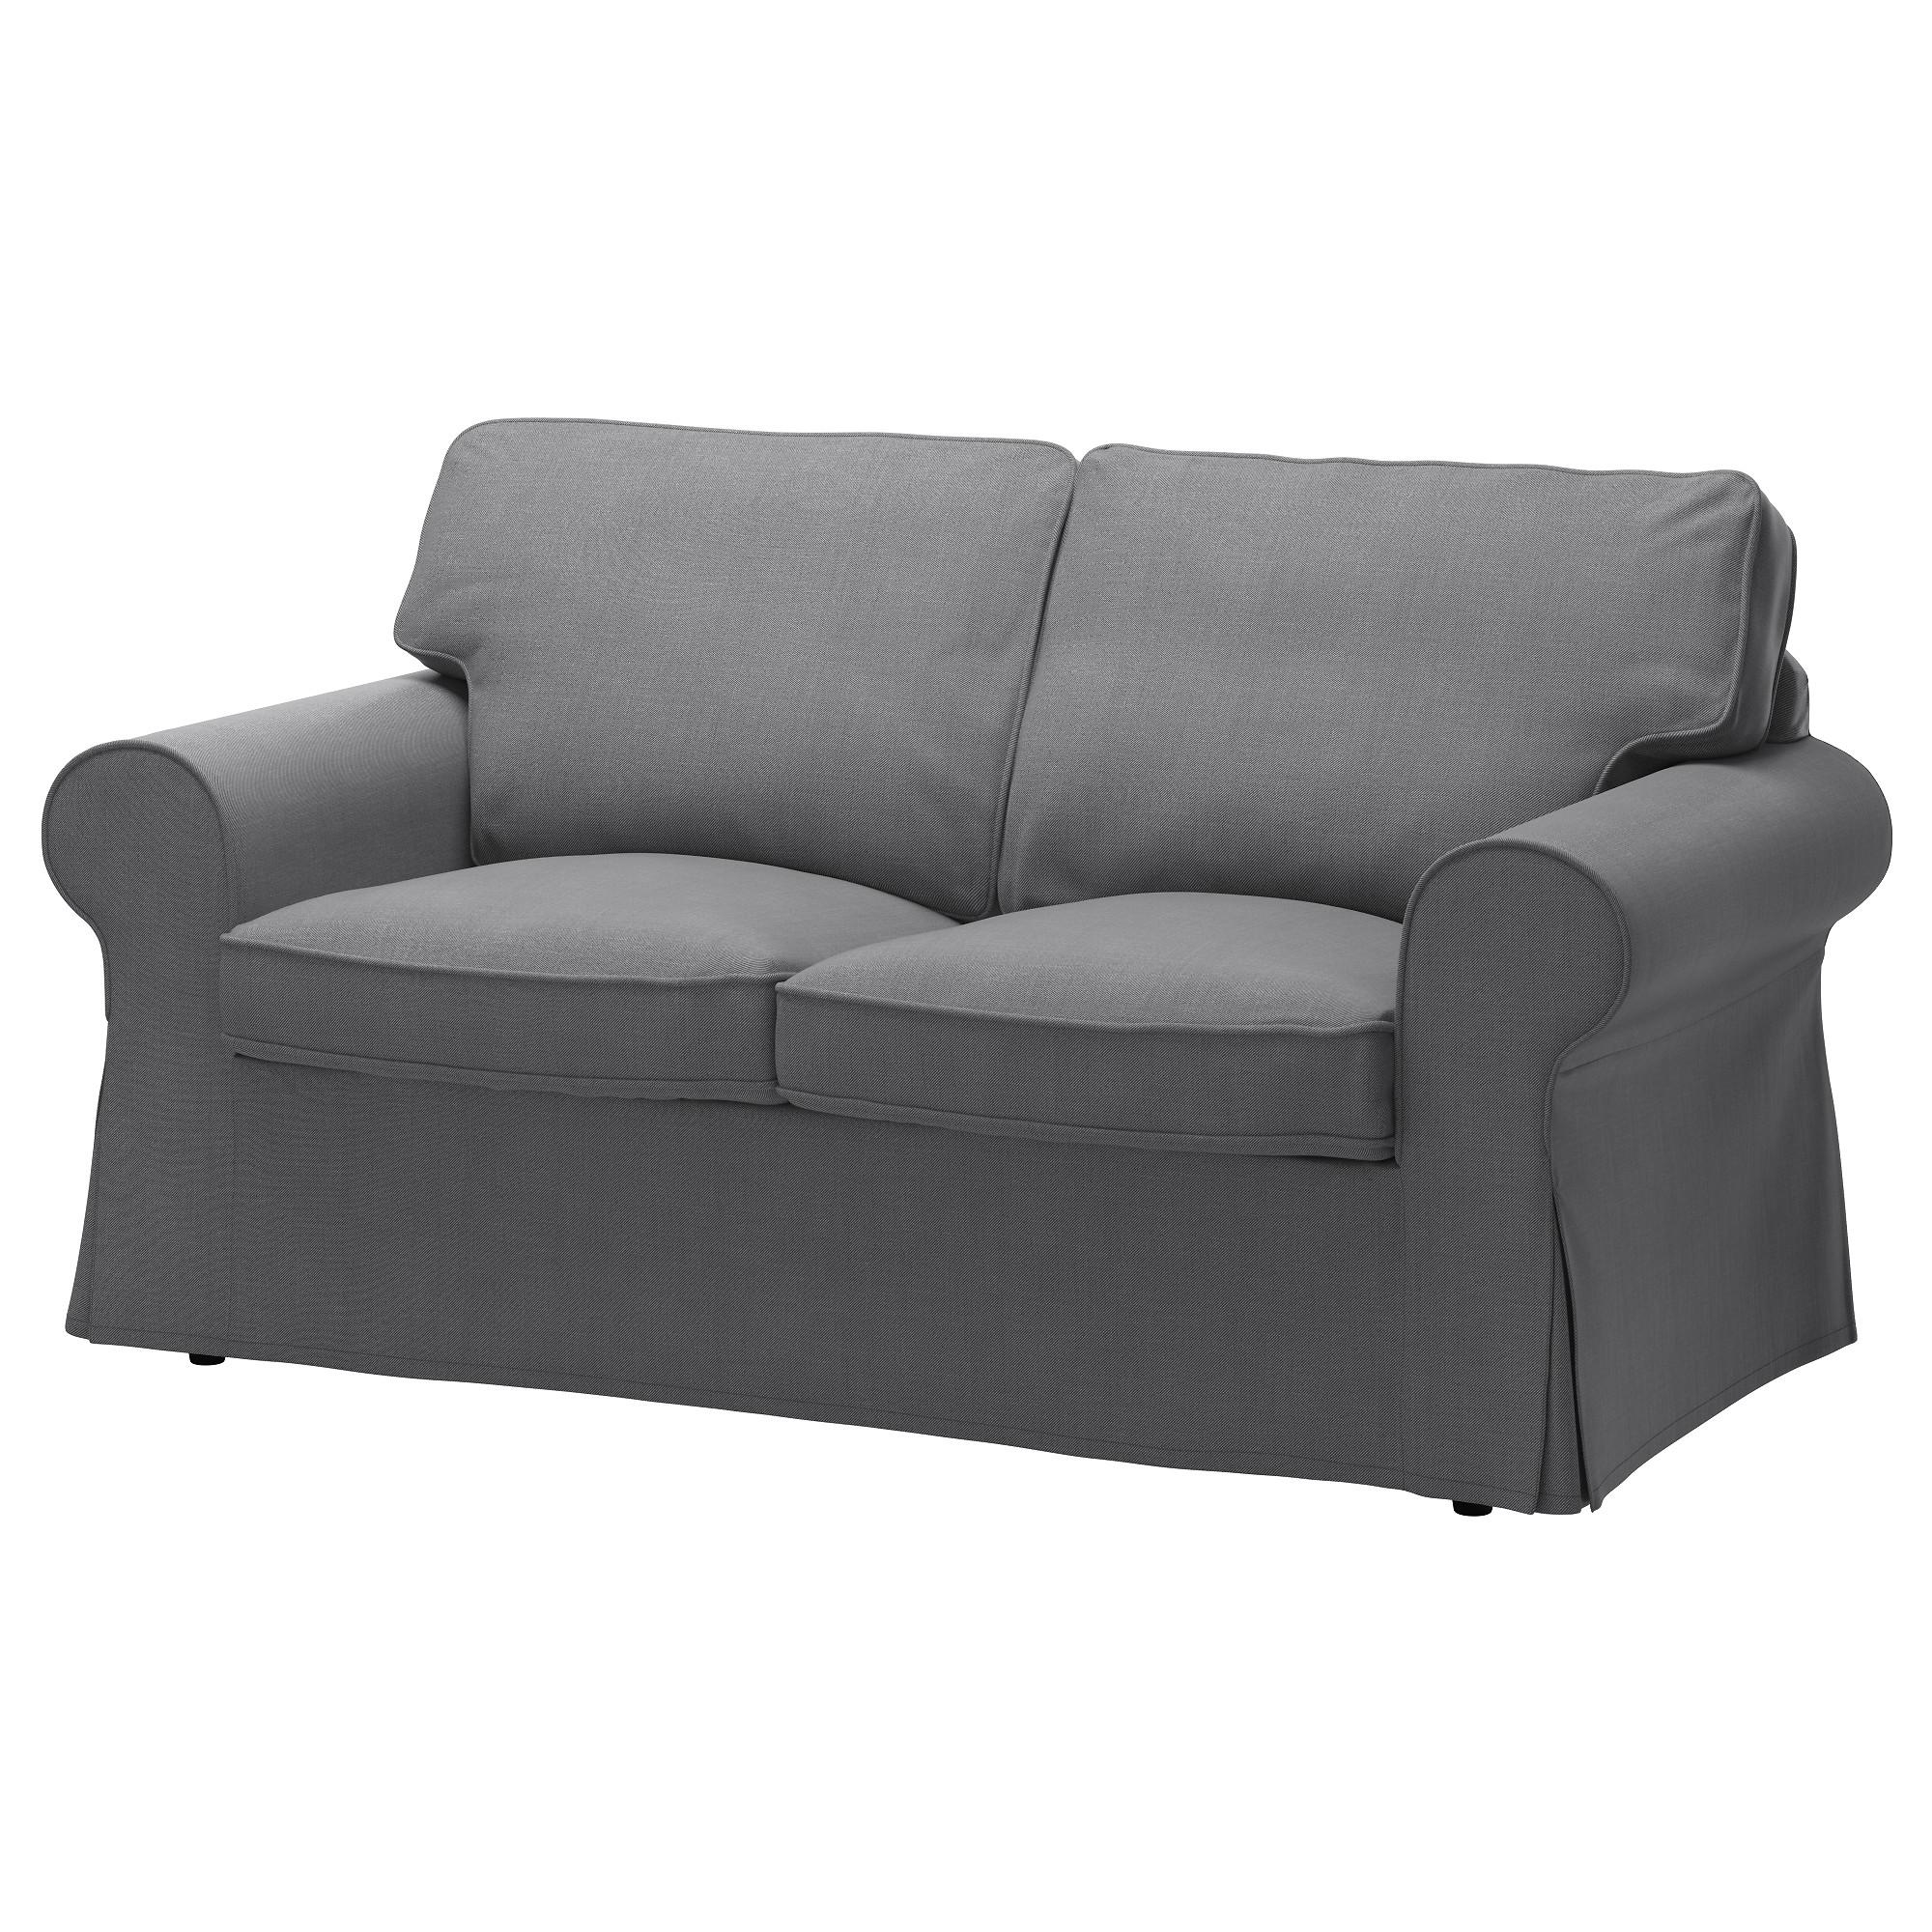 Small Sofa & 2 Seater Sofa | Ikea For Small 2 Seater Sofas (View 12 of 20)